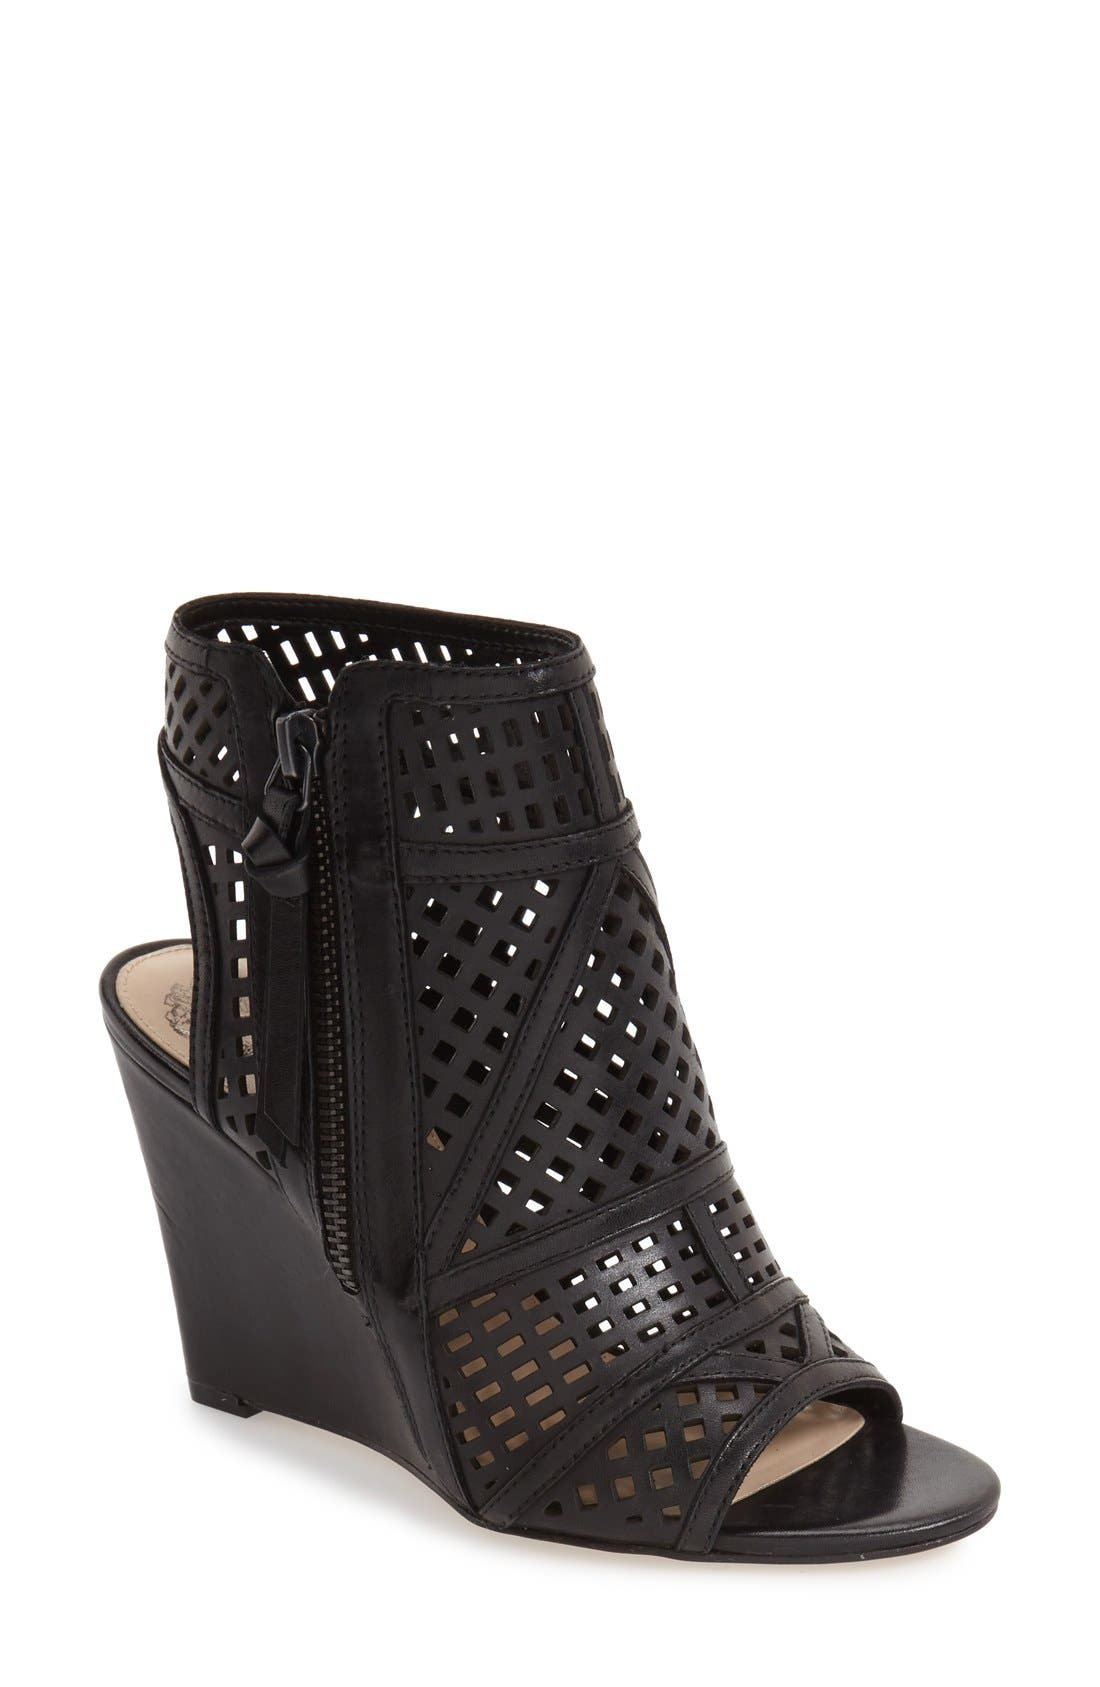 Main Image - Vince Camuto 'Xabrina' Perforated Wedge Sandal (Women)